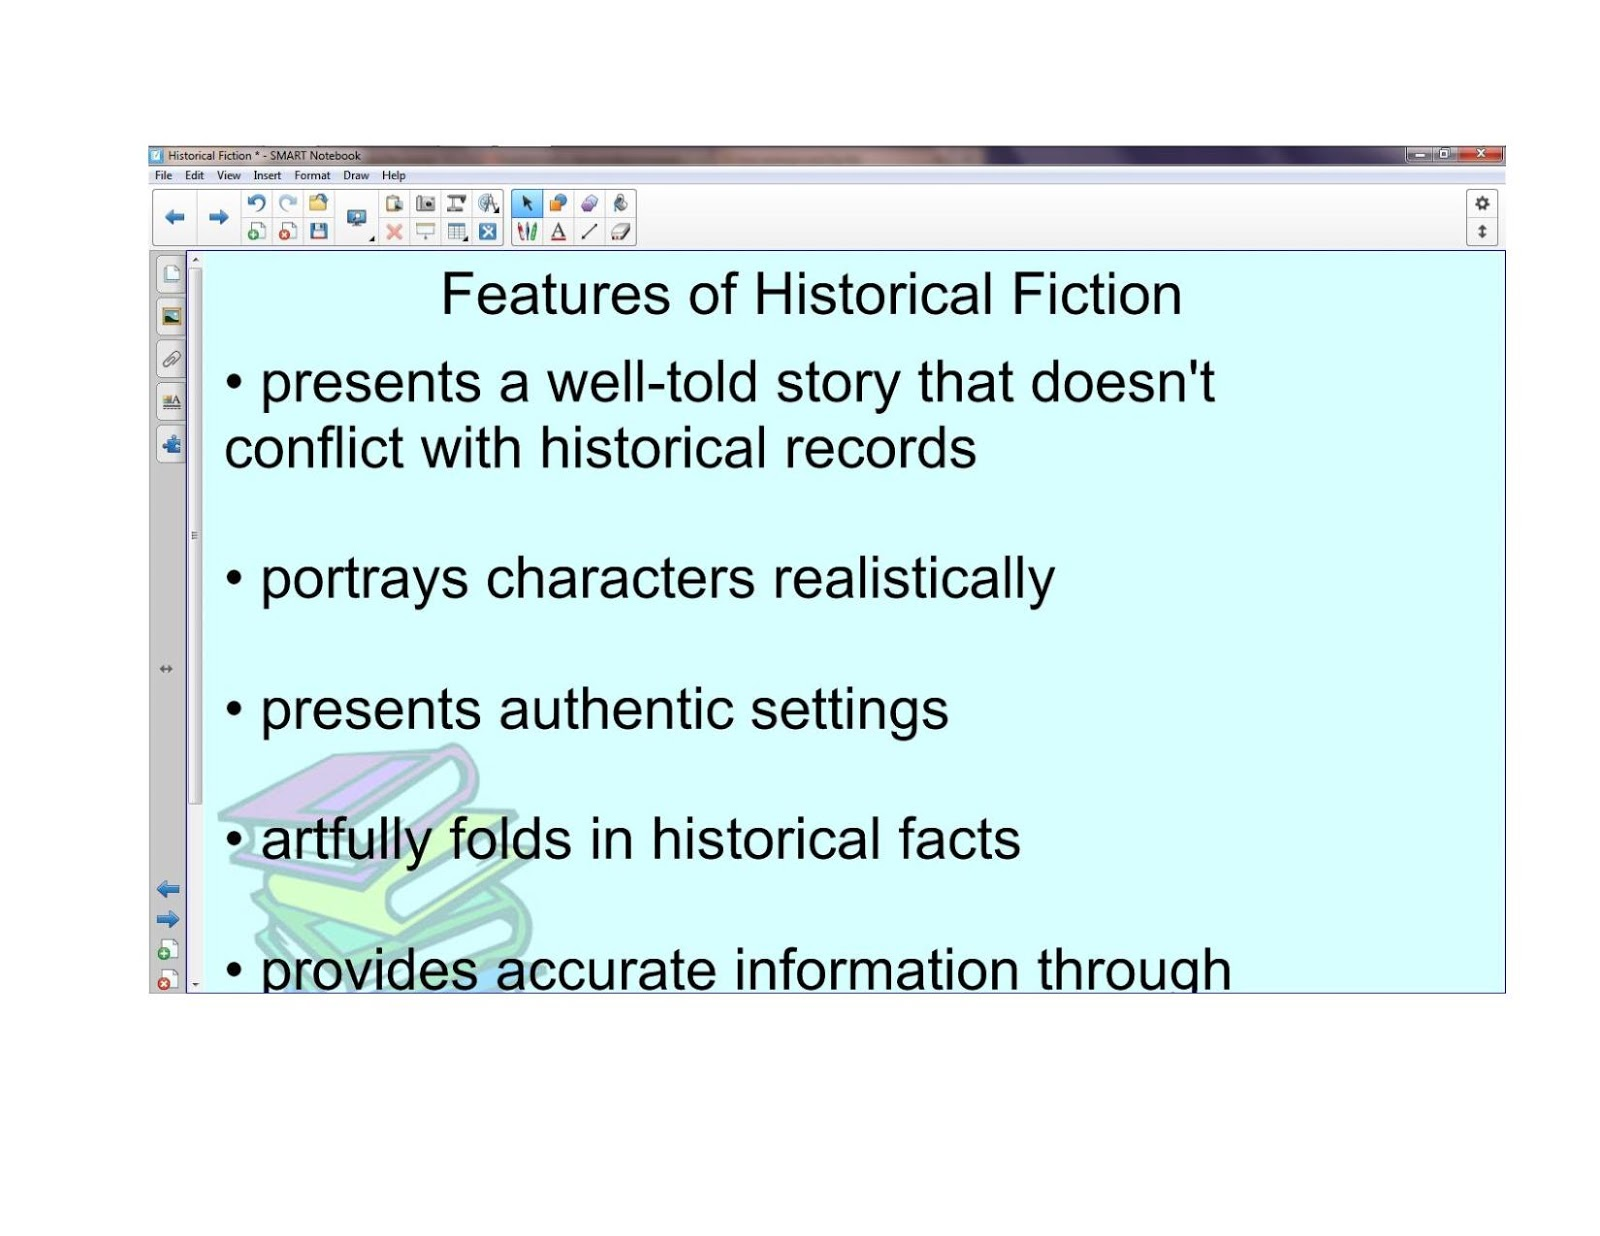 how to write a historical fiction essay You should consider writing historical fiction if: you love reading novels set in past times you enjoy learning about and imagining life in other historical times.